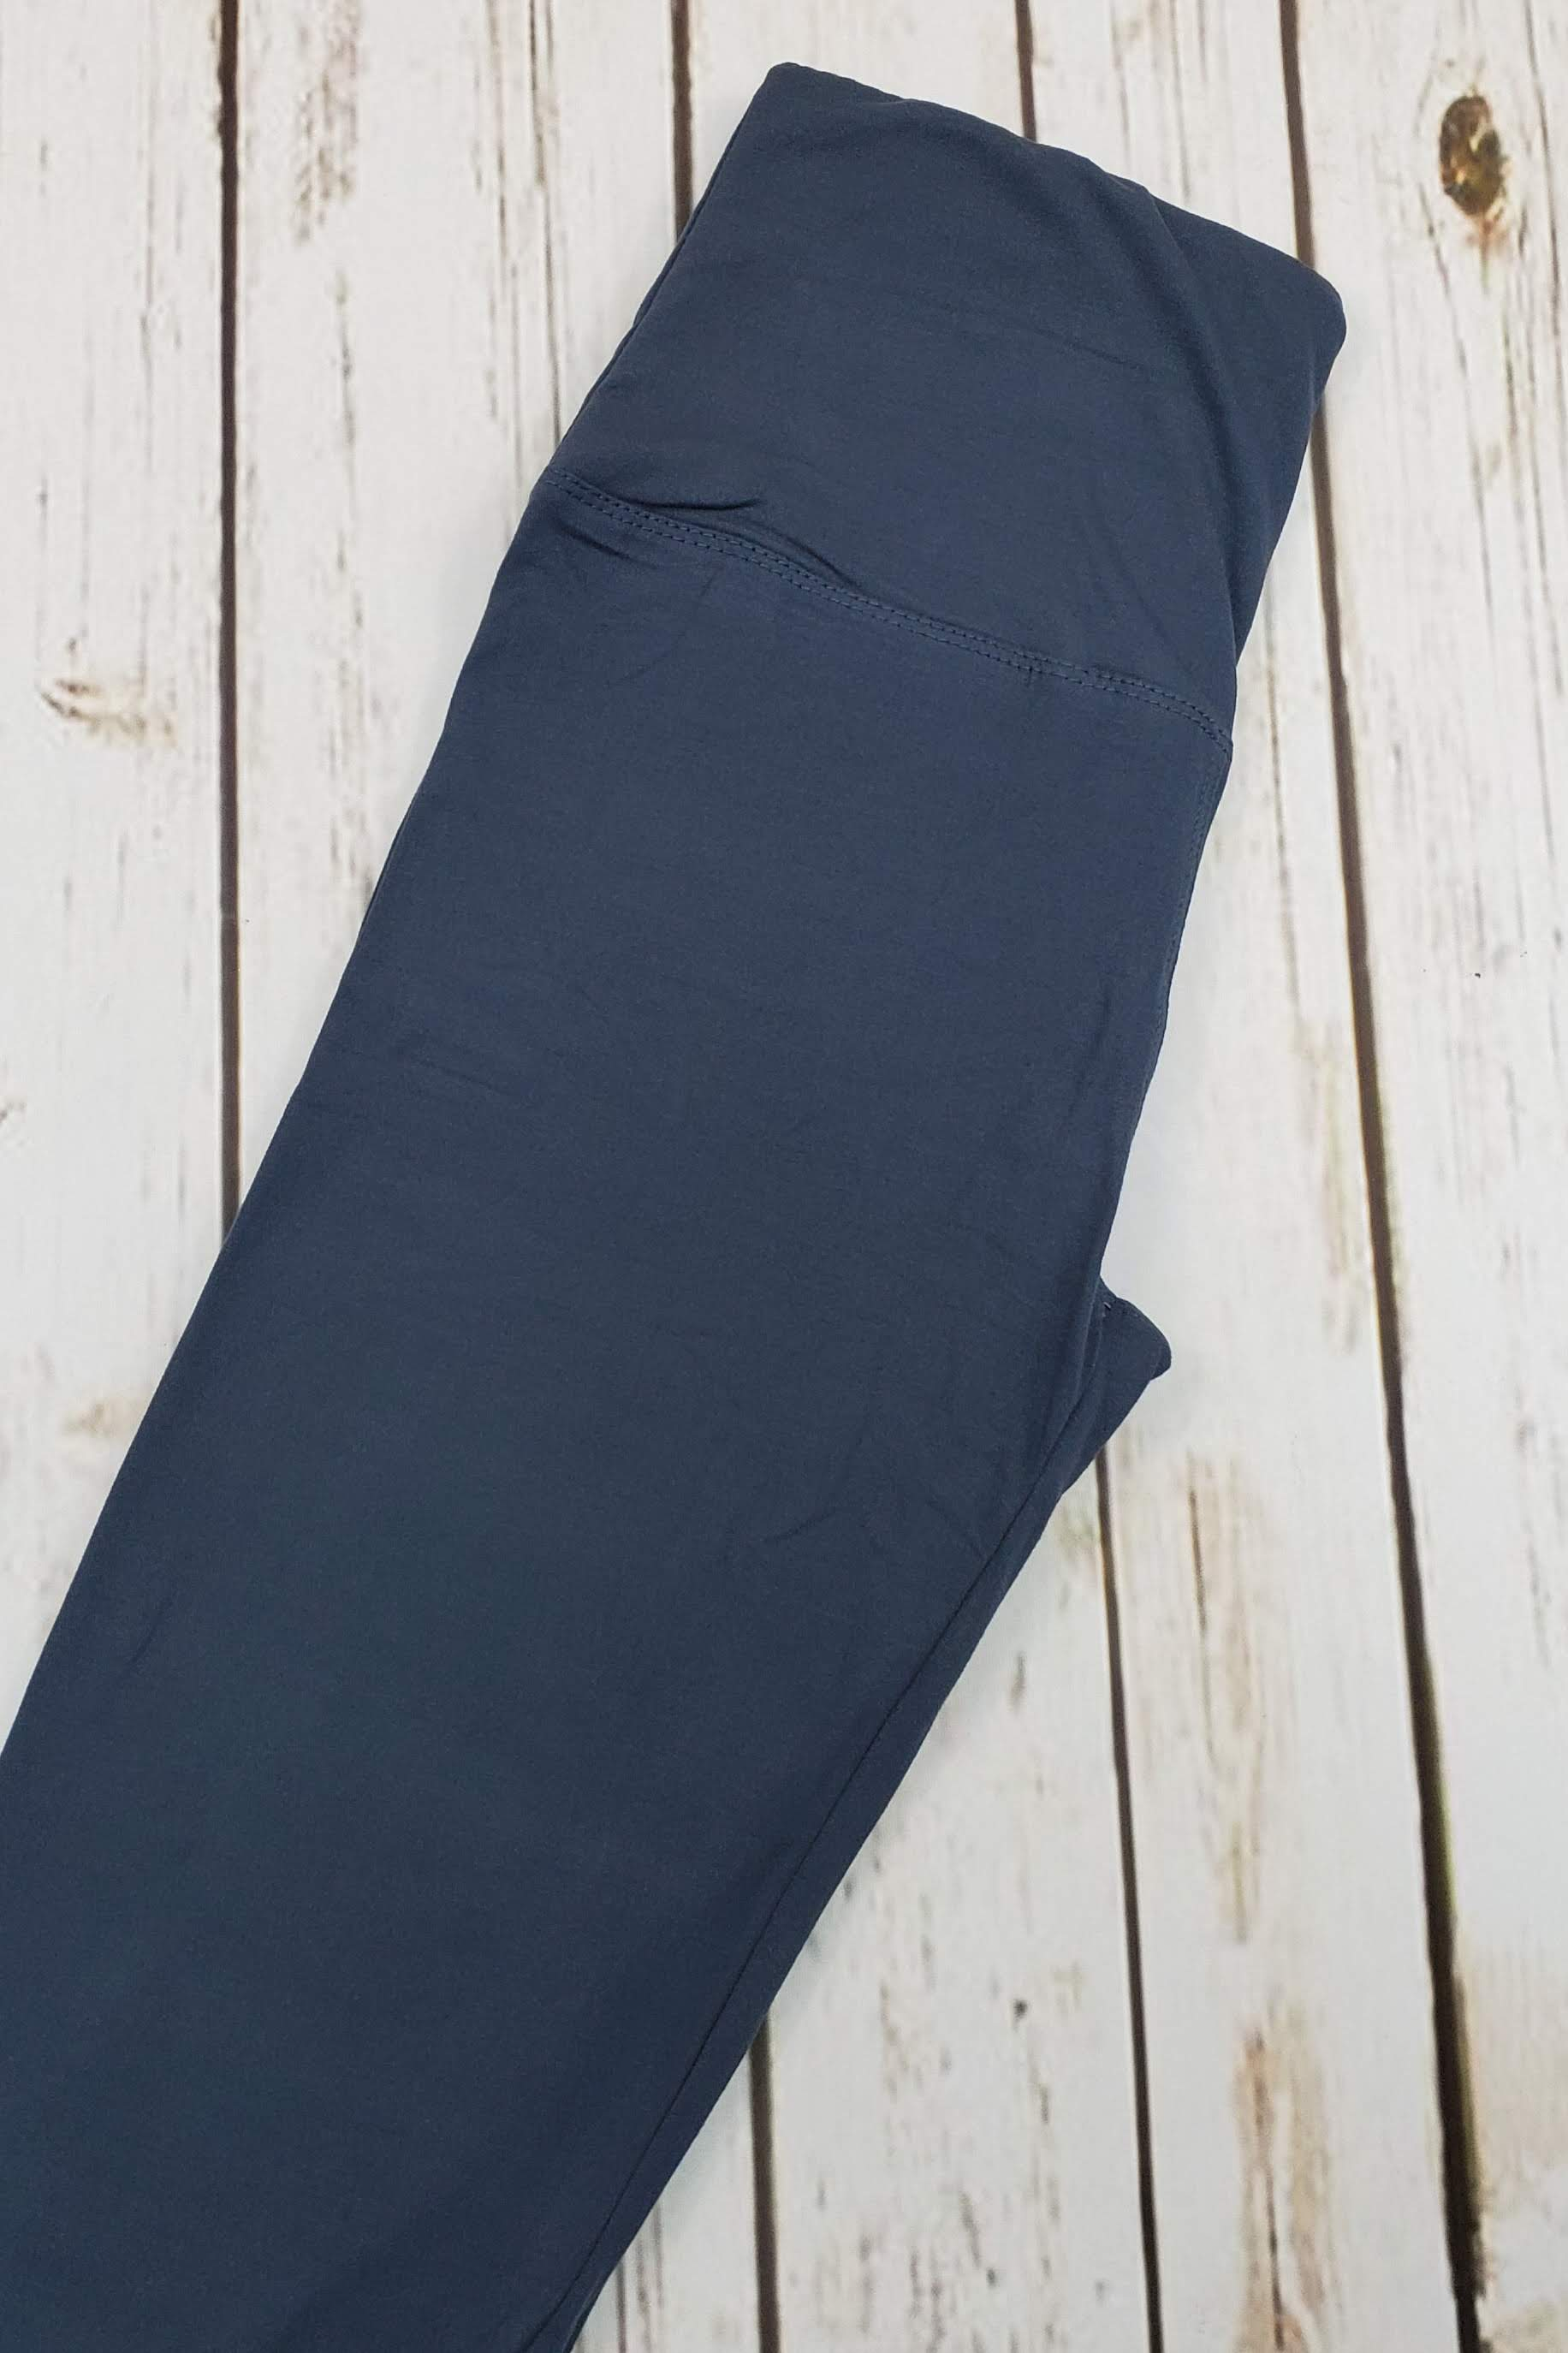 Solid Charcoal Leggings Yoga Band *SPECIALIZED*